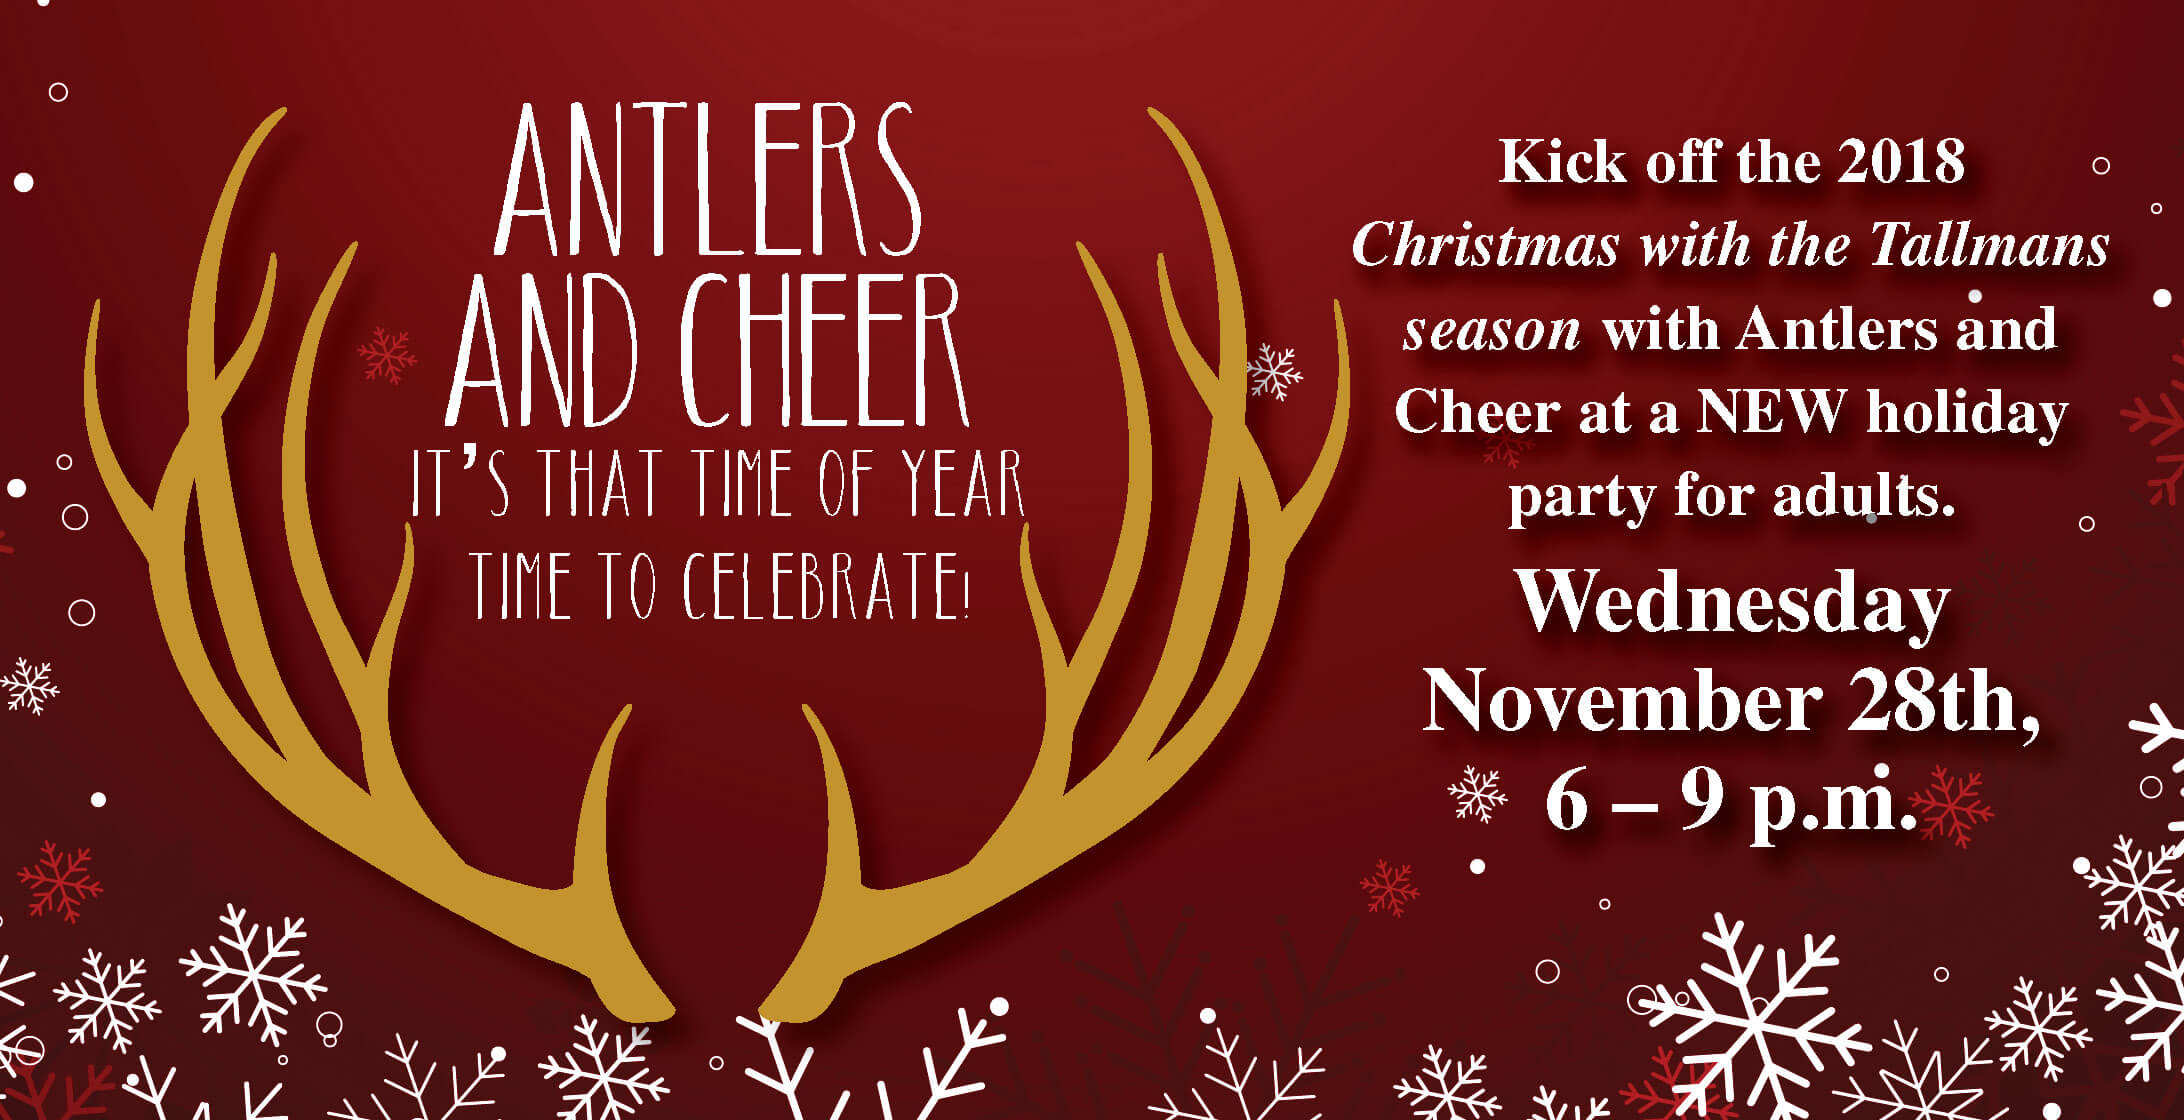 Antlers and Cheer 2018